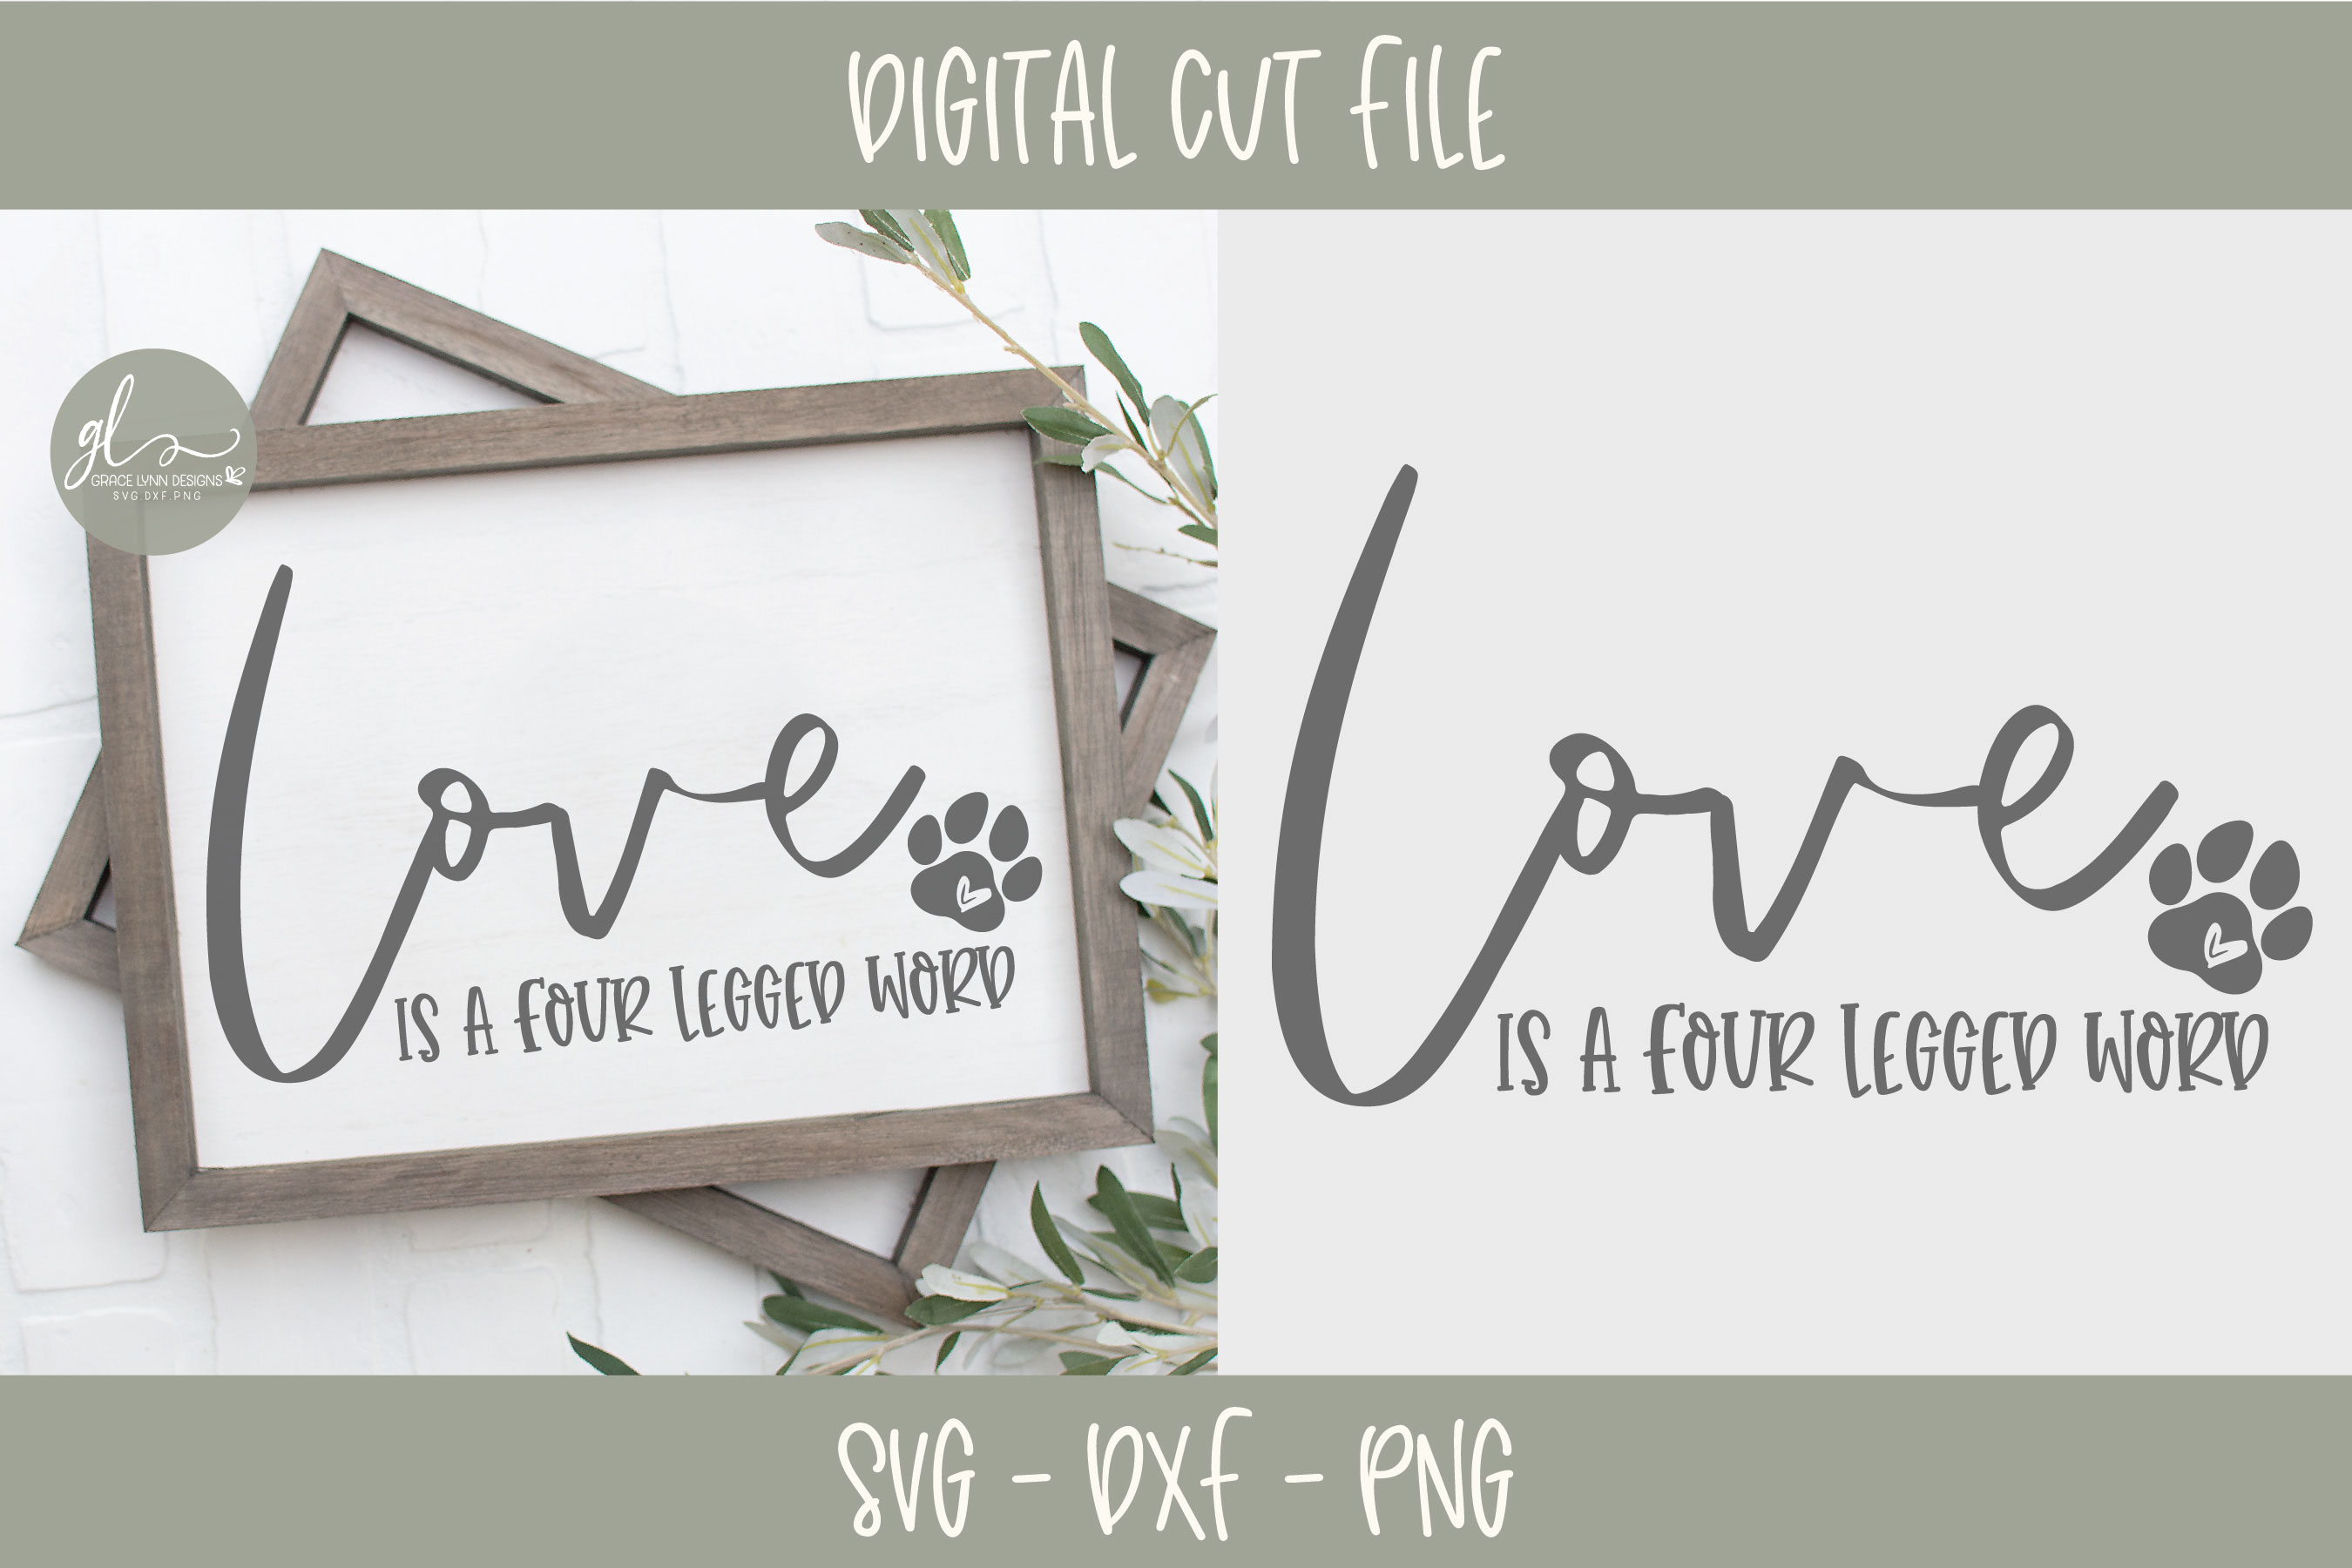 Dog Quotes Bundle Vol. 1 - 12 Designs - SVG Cut Files example image 2